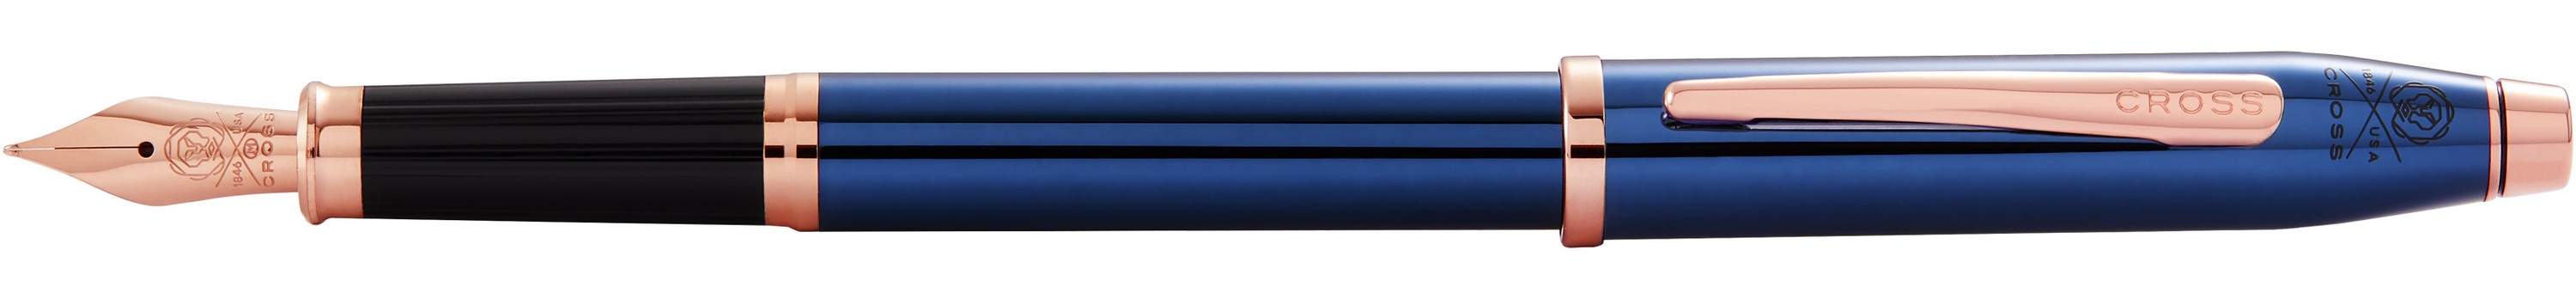 146442841-126 - Century II Translucent Cobalt Blue Lacquer with Rose Gold PVD Nib and Appointments Fine Fountain Pen - thumbnail